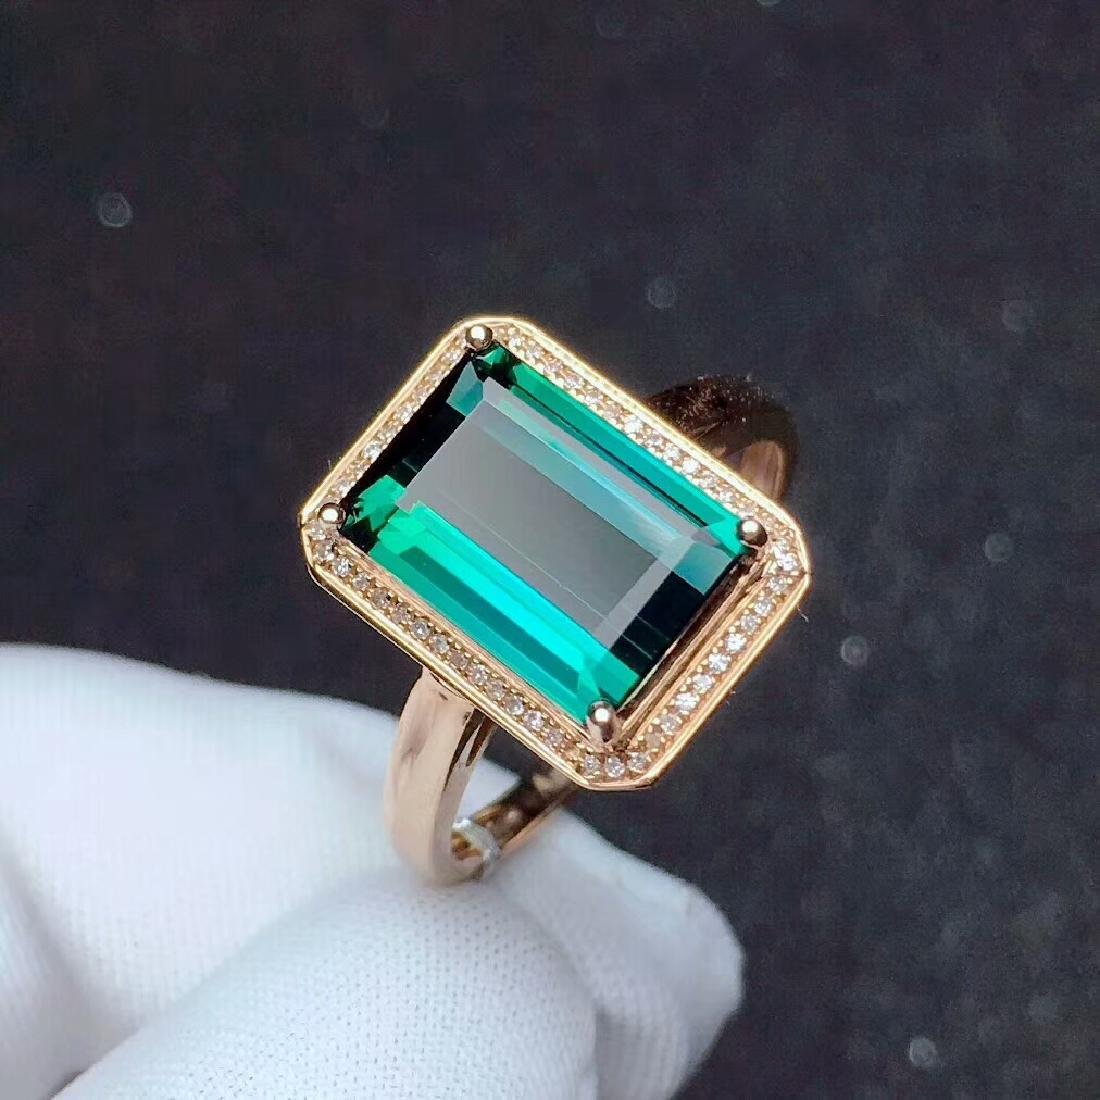 4ct TourmalineRing in 18kt Rose Gold - 3